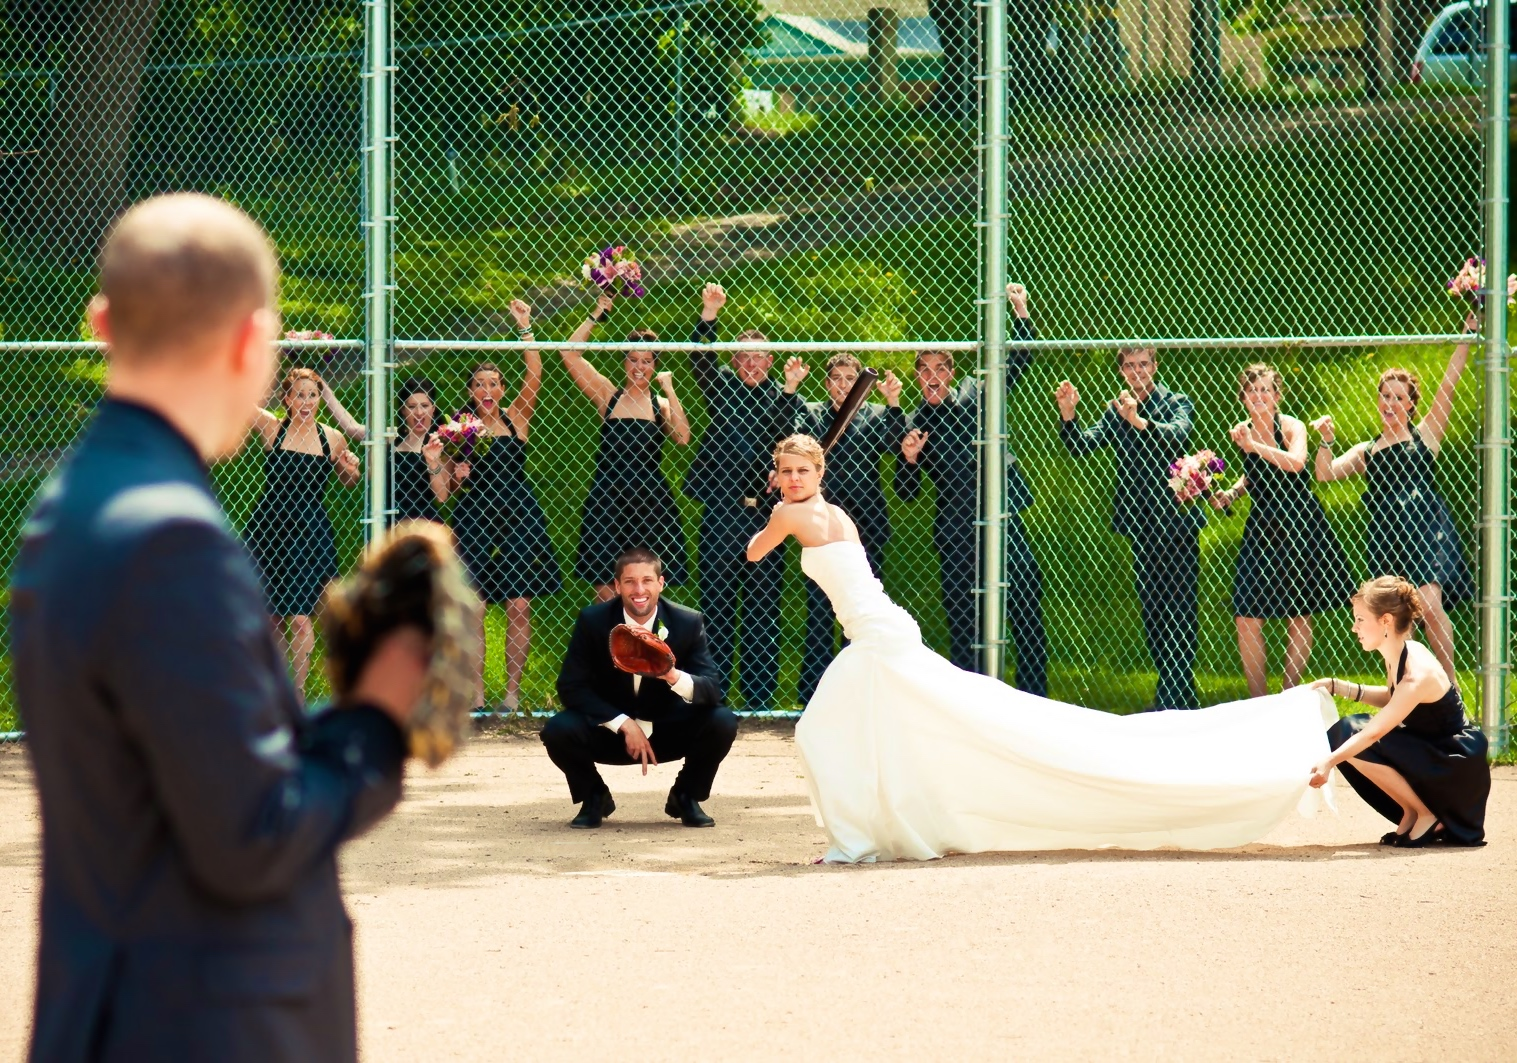 EFANI KIM AND DAVE'S BASEBALL WEDDING